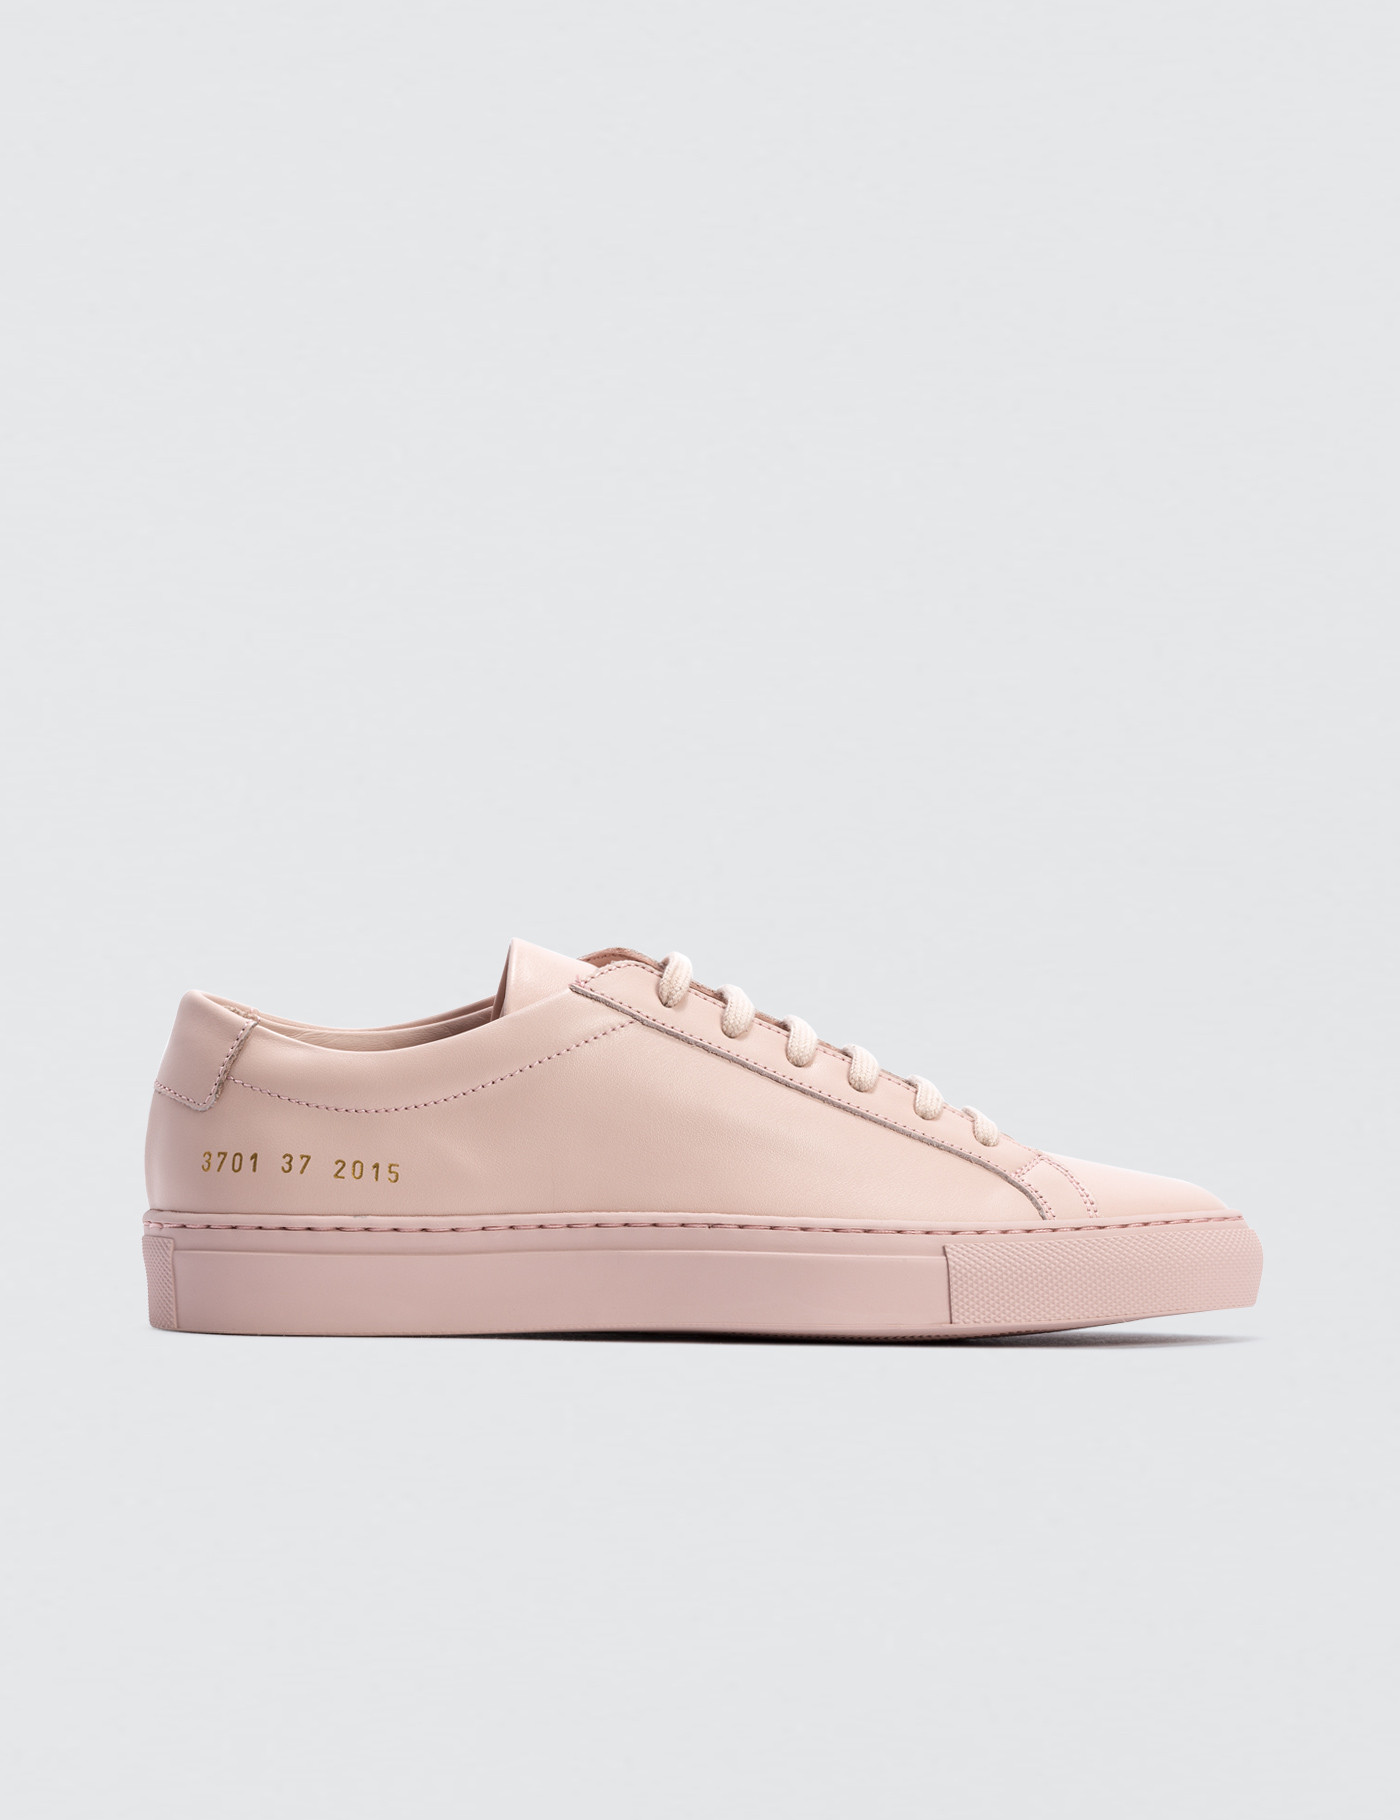 b8537ea2442 Buy Original Common Projects Original Achilles Low Trainers at ...